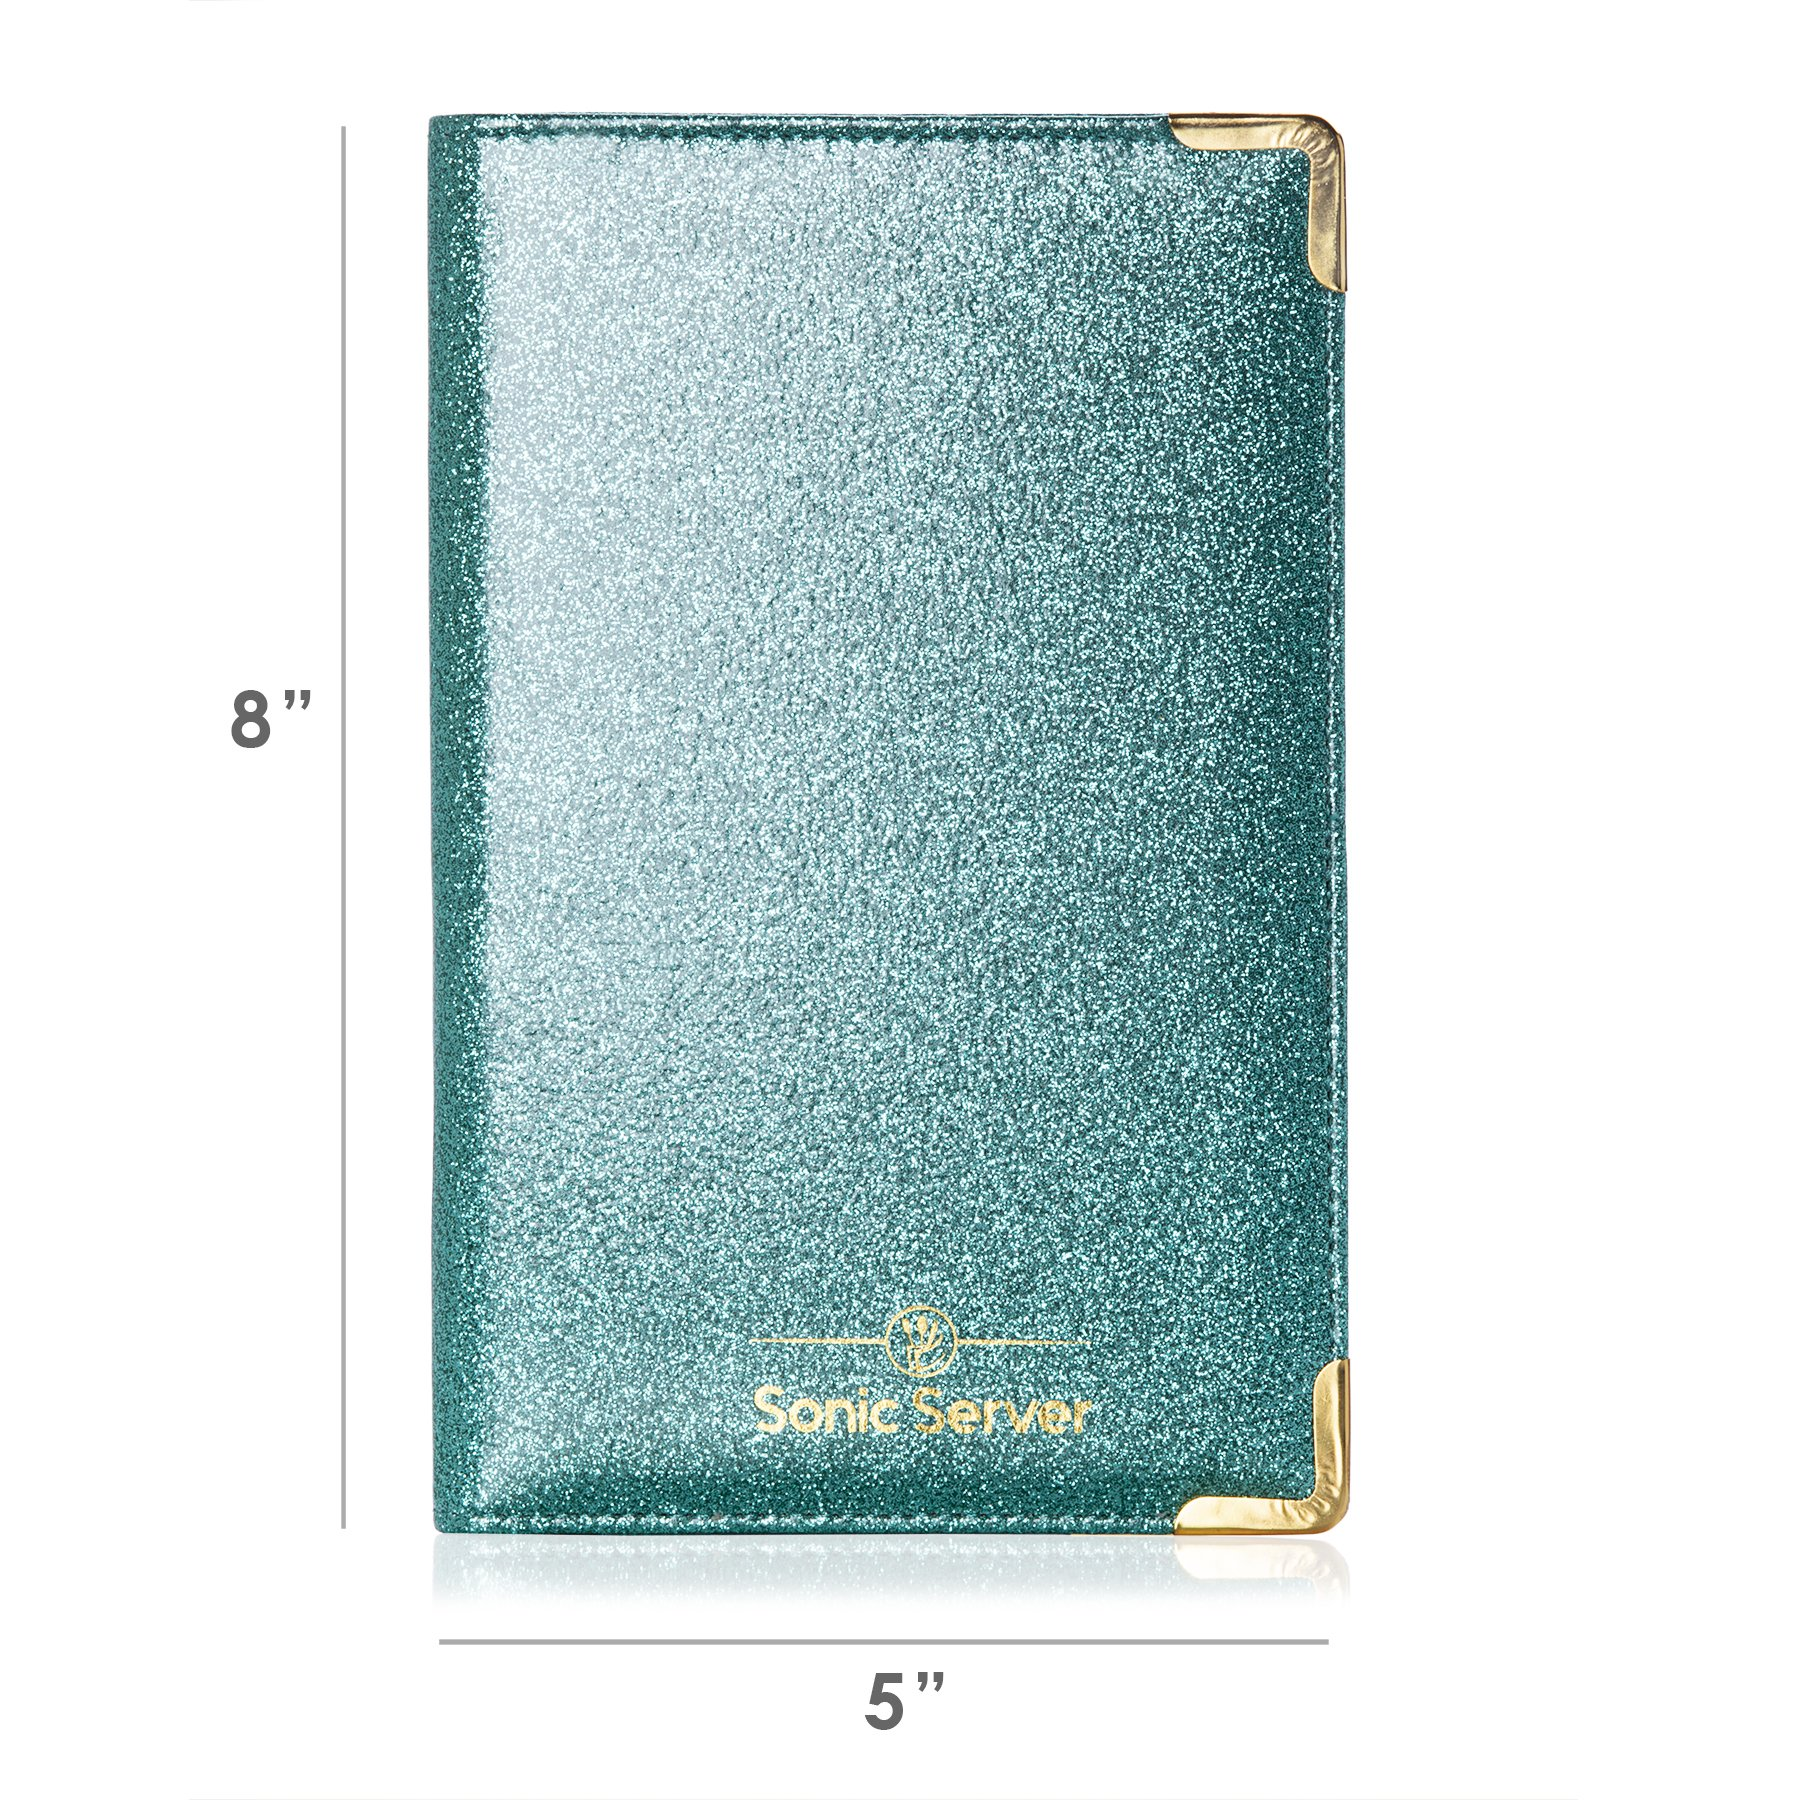 Sonic Server Dazzling Glitter Server Book and Waiter Waitress Organizer for Waitstaff | Aqua Turquoise Bling | 10 Pockets Holds Guest Checks, Money, Receipts, Order Pad with Pen Holder Loop by Sonic Server (Image #2)